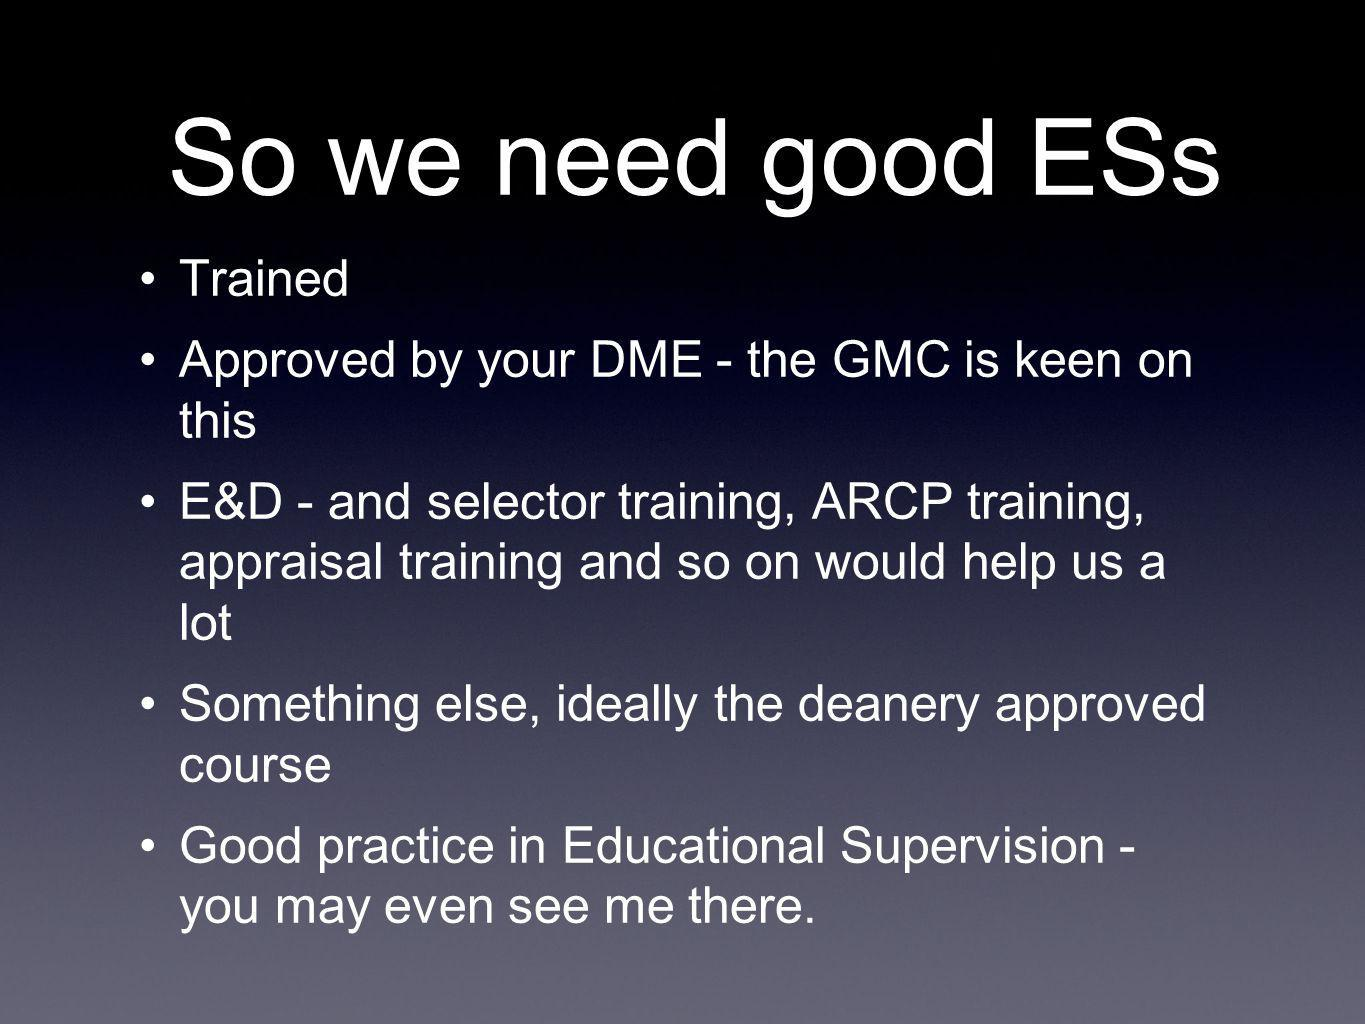 So we need good ESs Trained Approved by your DME - the GMC is keen on this E&D - and selector training, ARCP training, appraisal training and so on would help us a lot Something else, ideally the deanery approved course Good practice in Educational Supervision - you may even see me there.